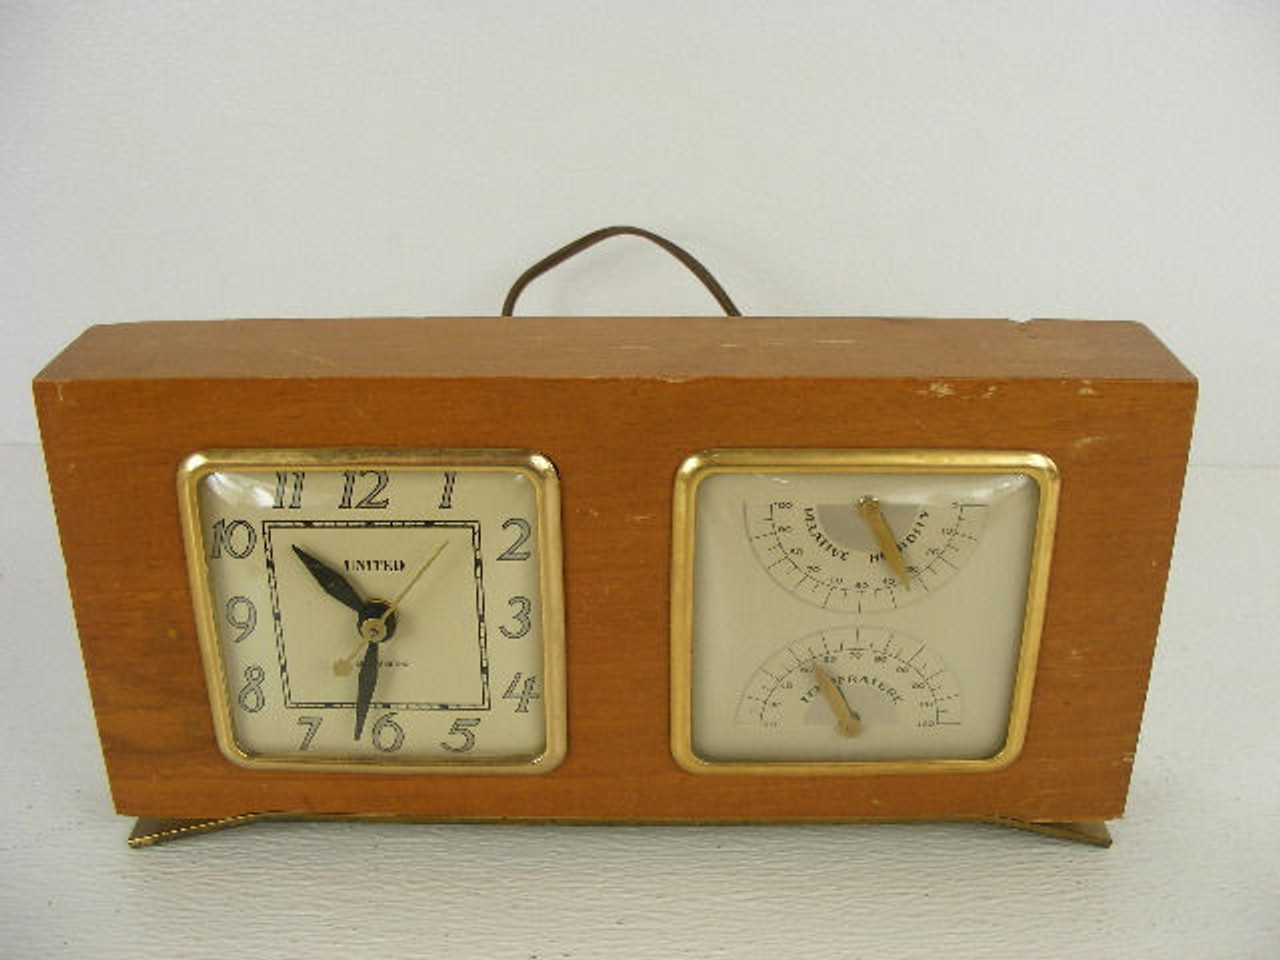 A Vintage Wood Desk Clock With Temperature And Humidity Dials Made